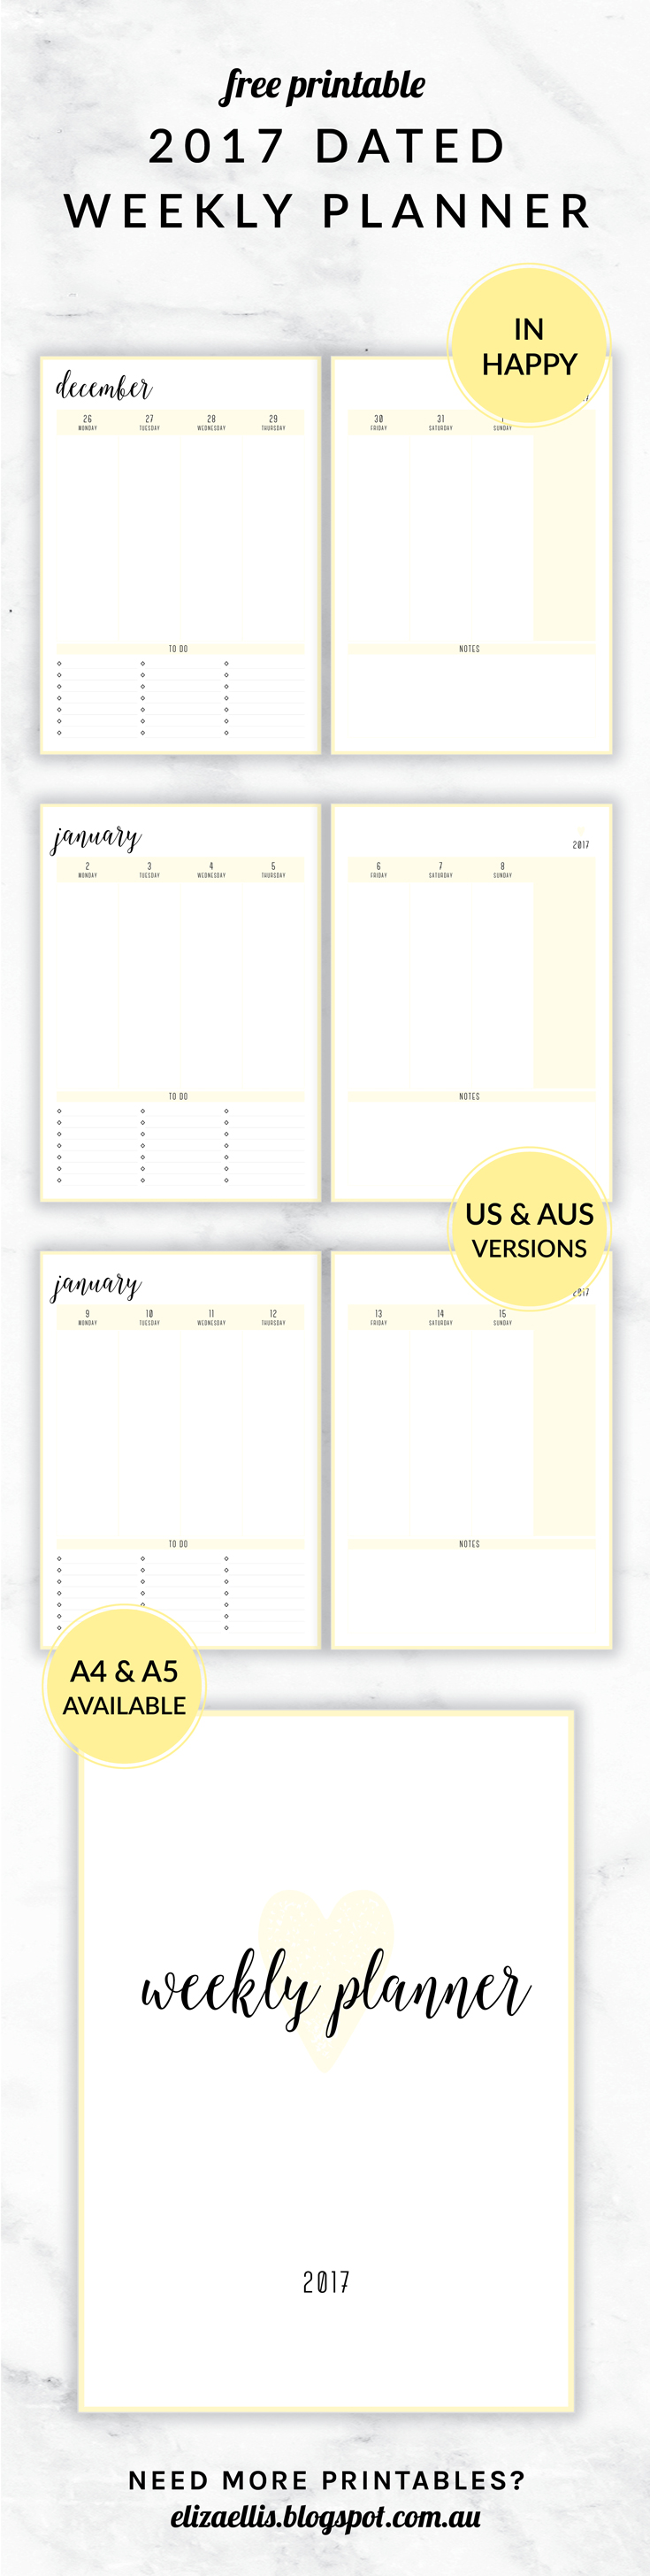 Free Printable 2017 Irma Collection Weekly Planner By Eliza Ellis Available In Both A4 And A5 Sizes And In Planner Printables Free Planner Weekly Planner